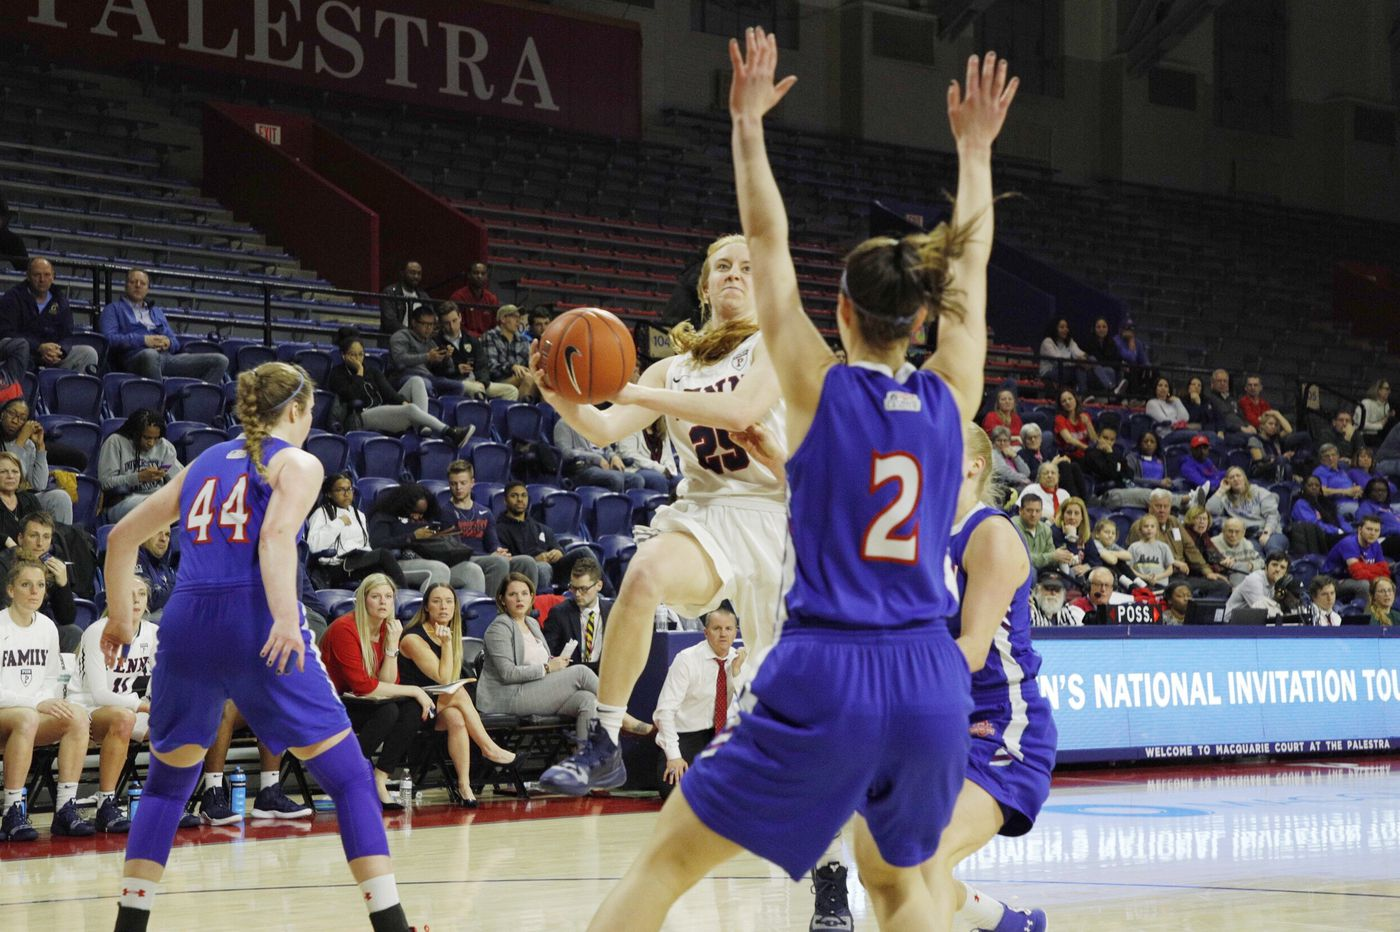 In women's NIT second round, Penn faces road trip to Providence on short notice